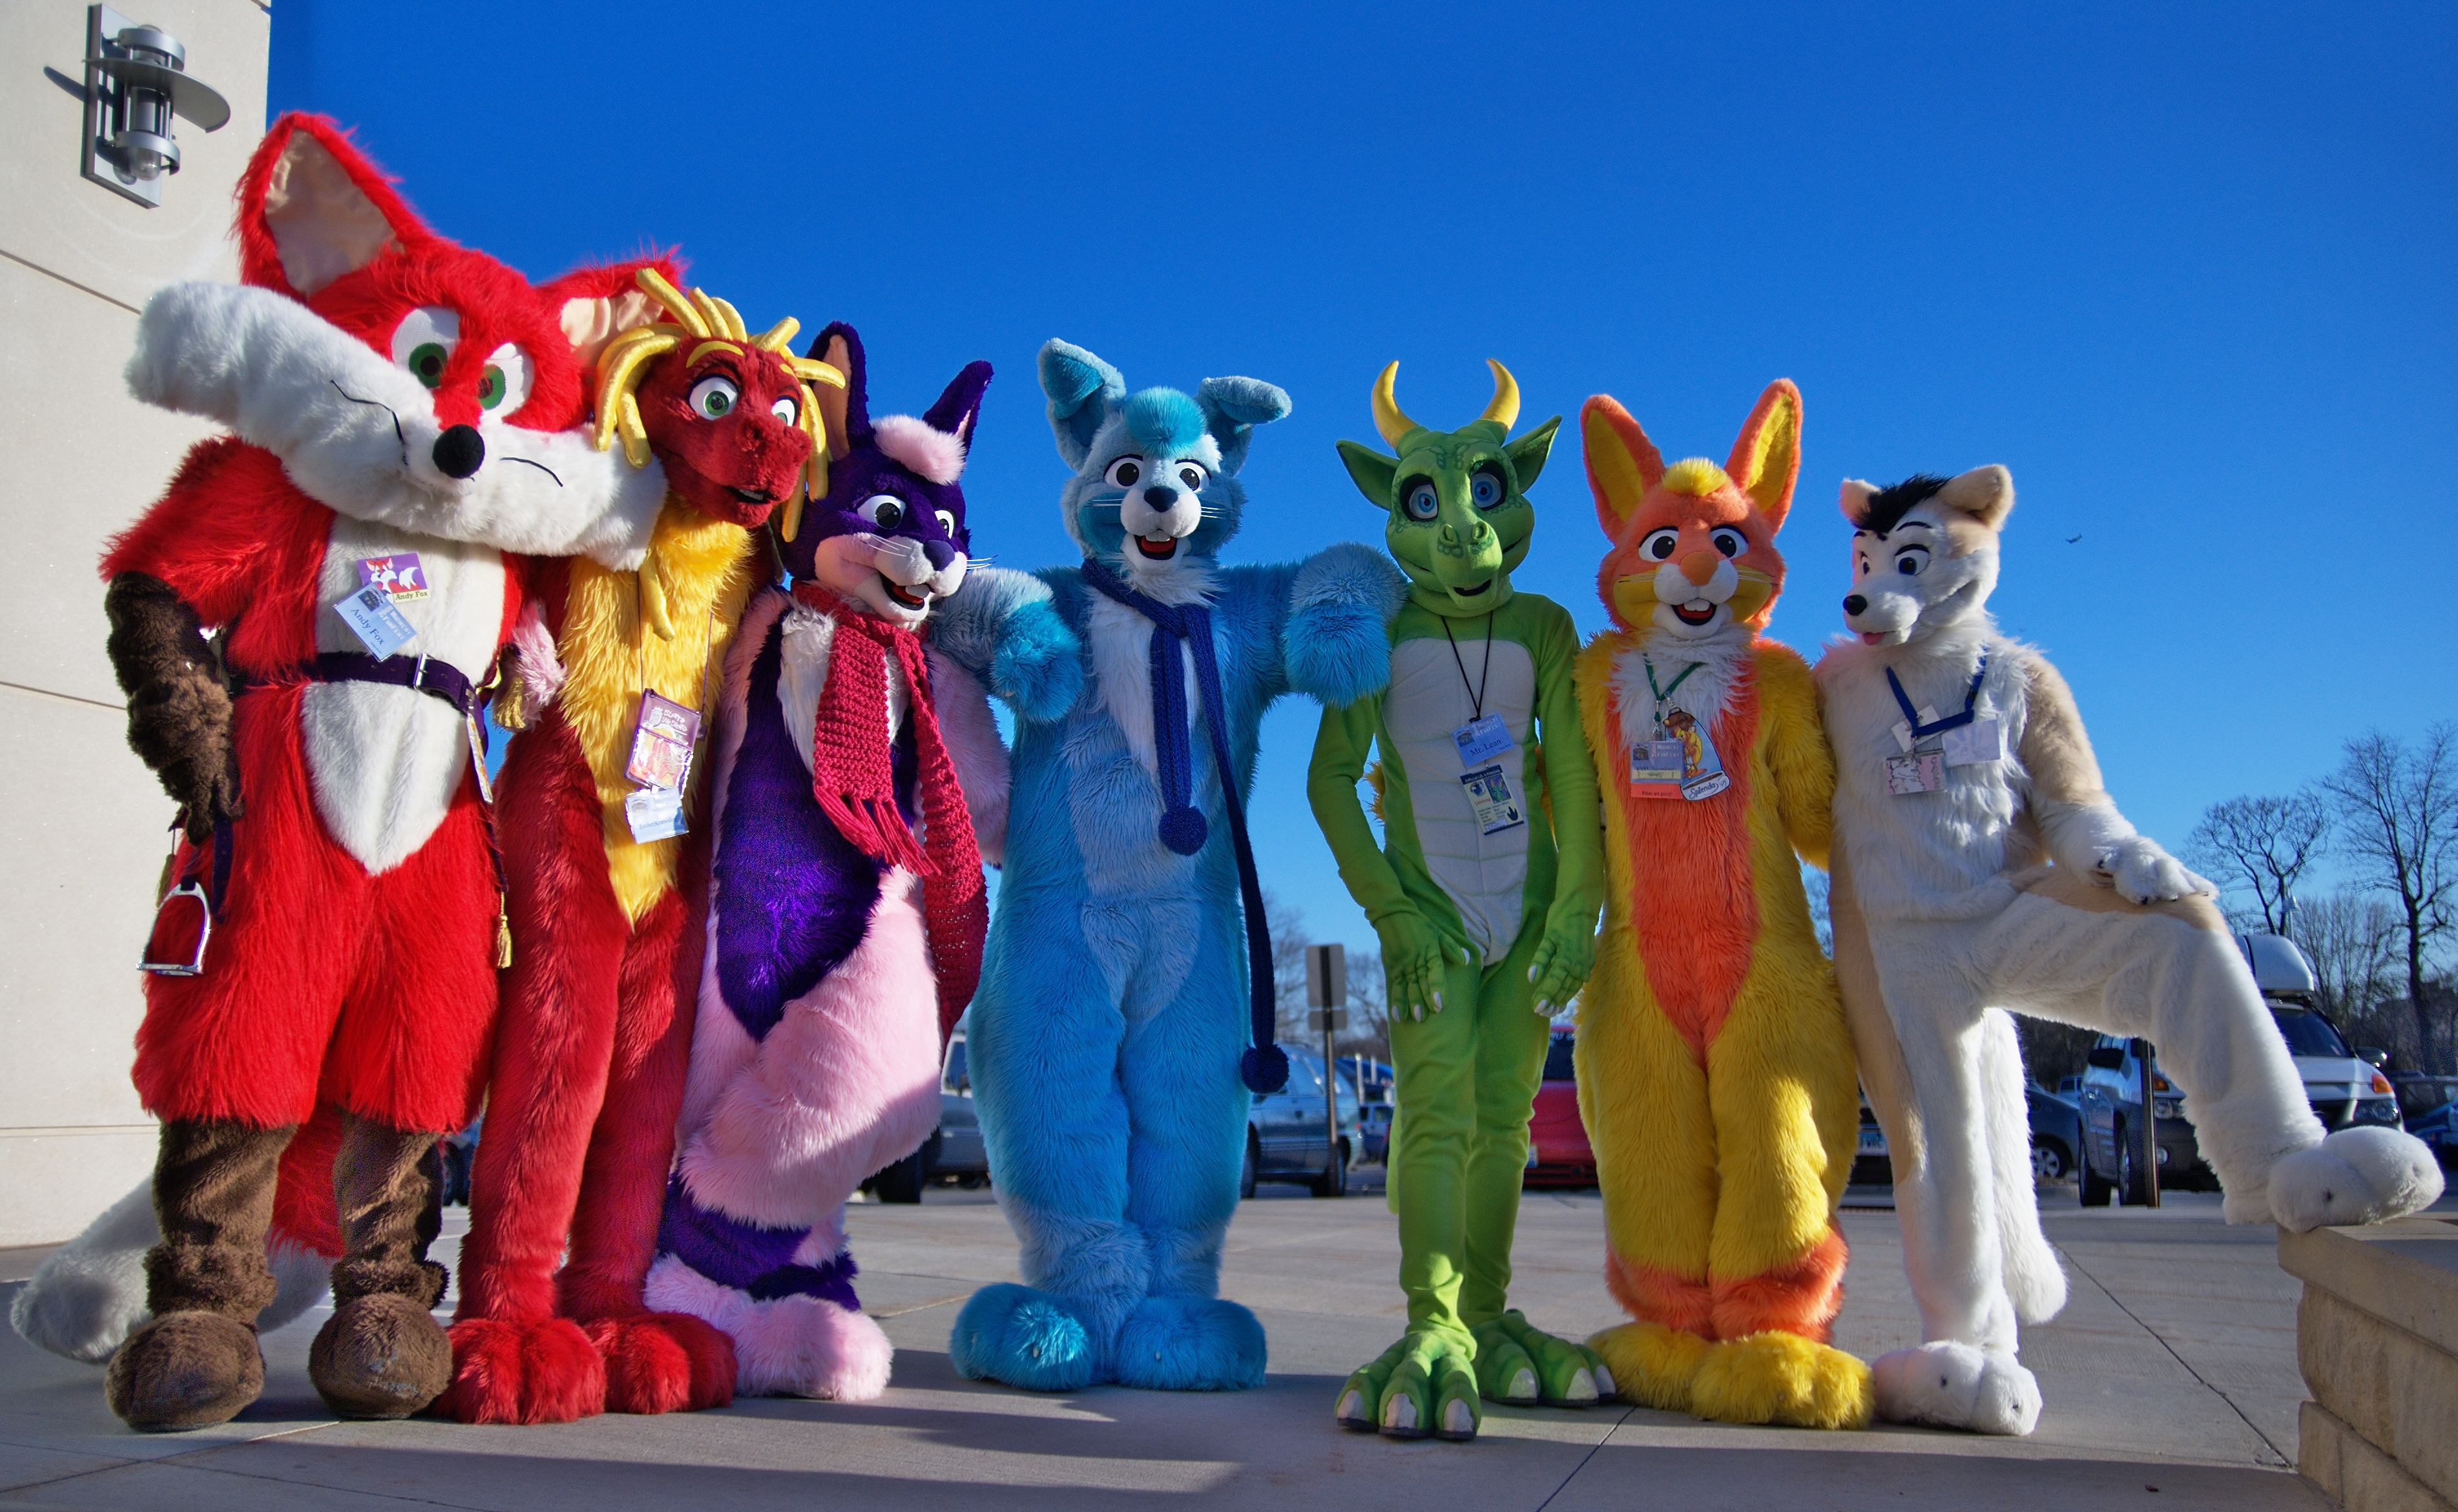 As silly as they may seem, therefore, furries represent a uniquely bizarre  intersection between fandom culture, sexual kink and identity politics.